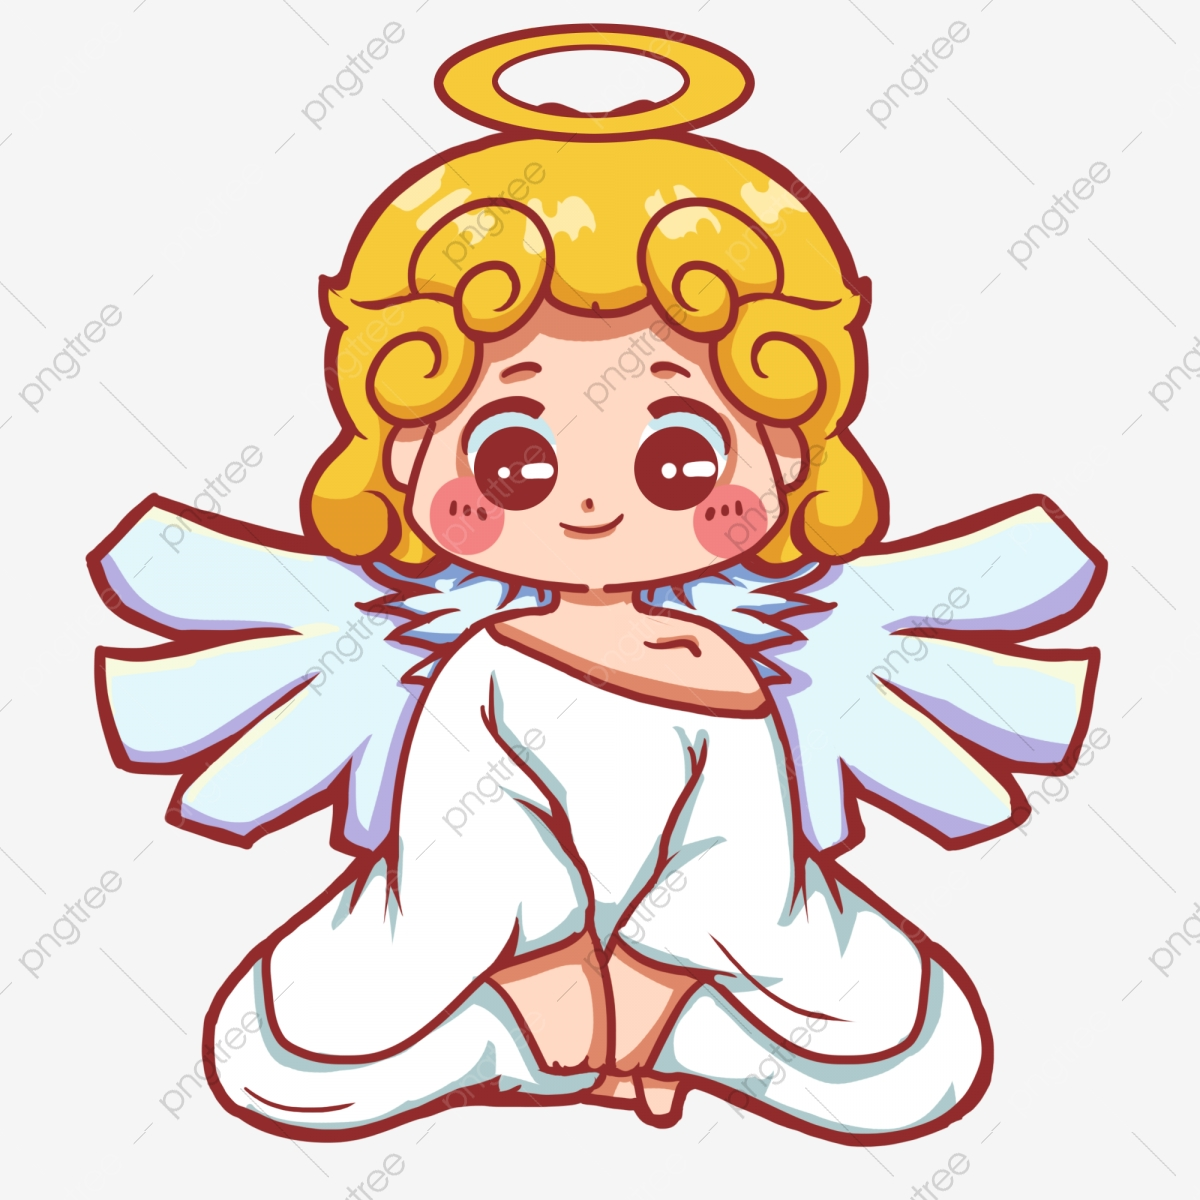 Angel Clipart Png Images Vector And Psd Files Free Download On Pngtree